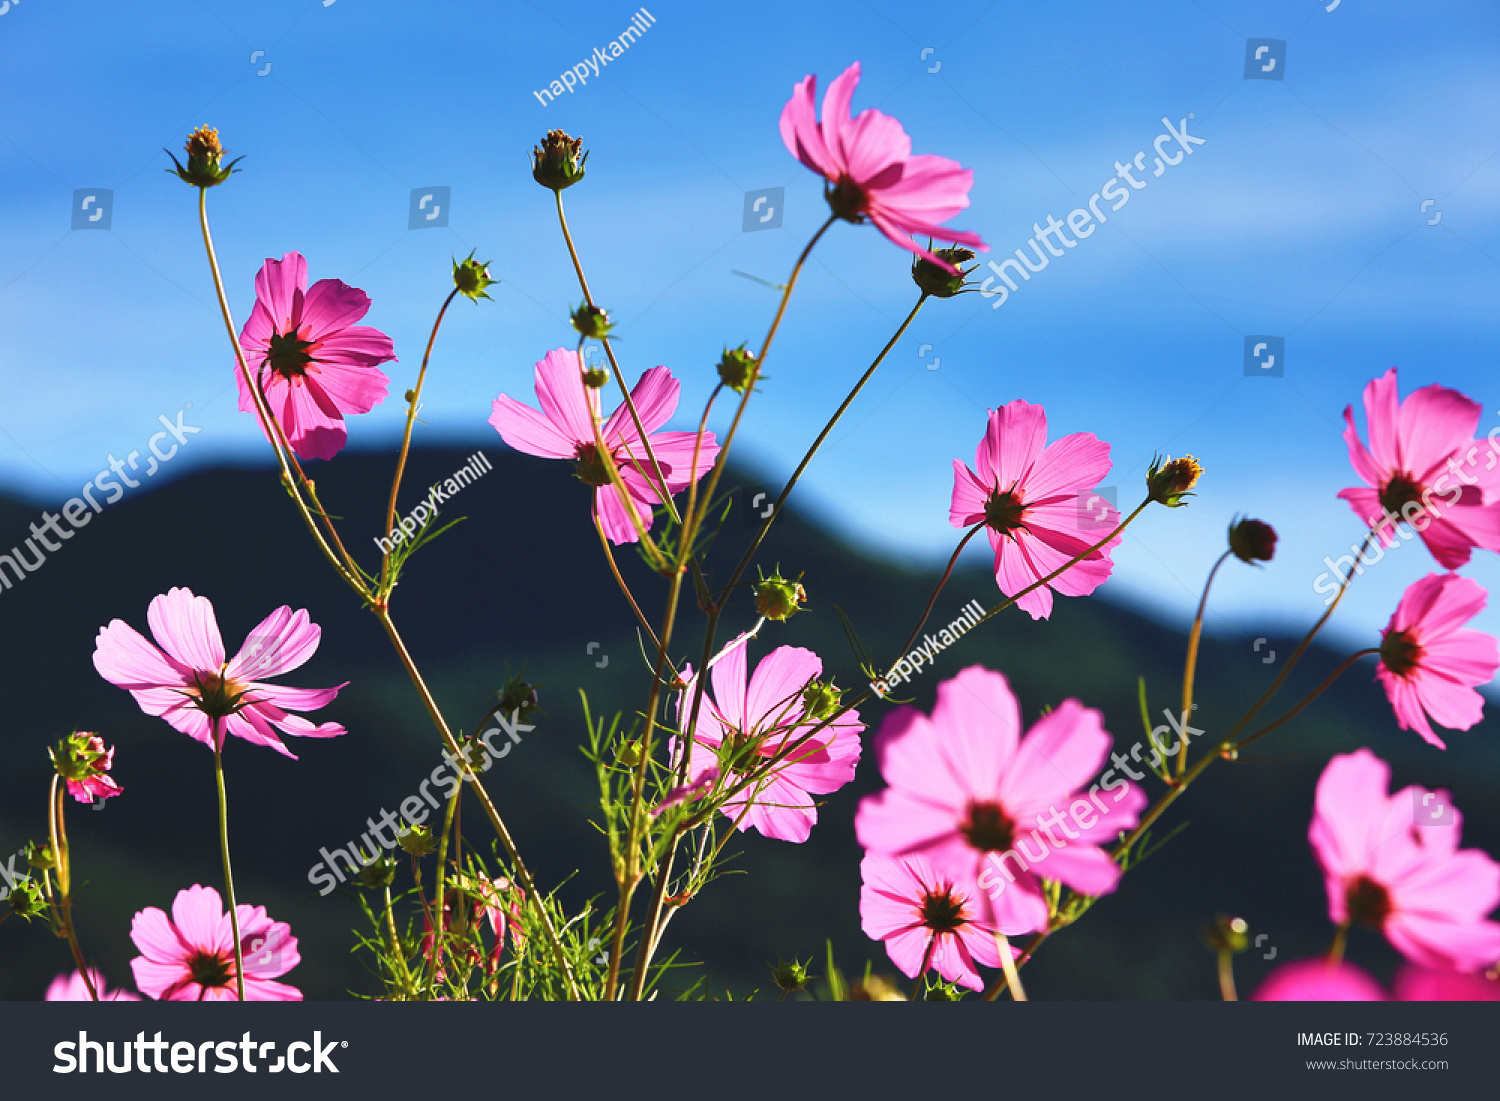 Beautiful scenery cosmos flowers buds blue stock photo edit now beautiful scenery of cosmos flowers and buds with blue sky backgroundcloseup izmirmasajfo